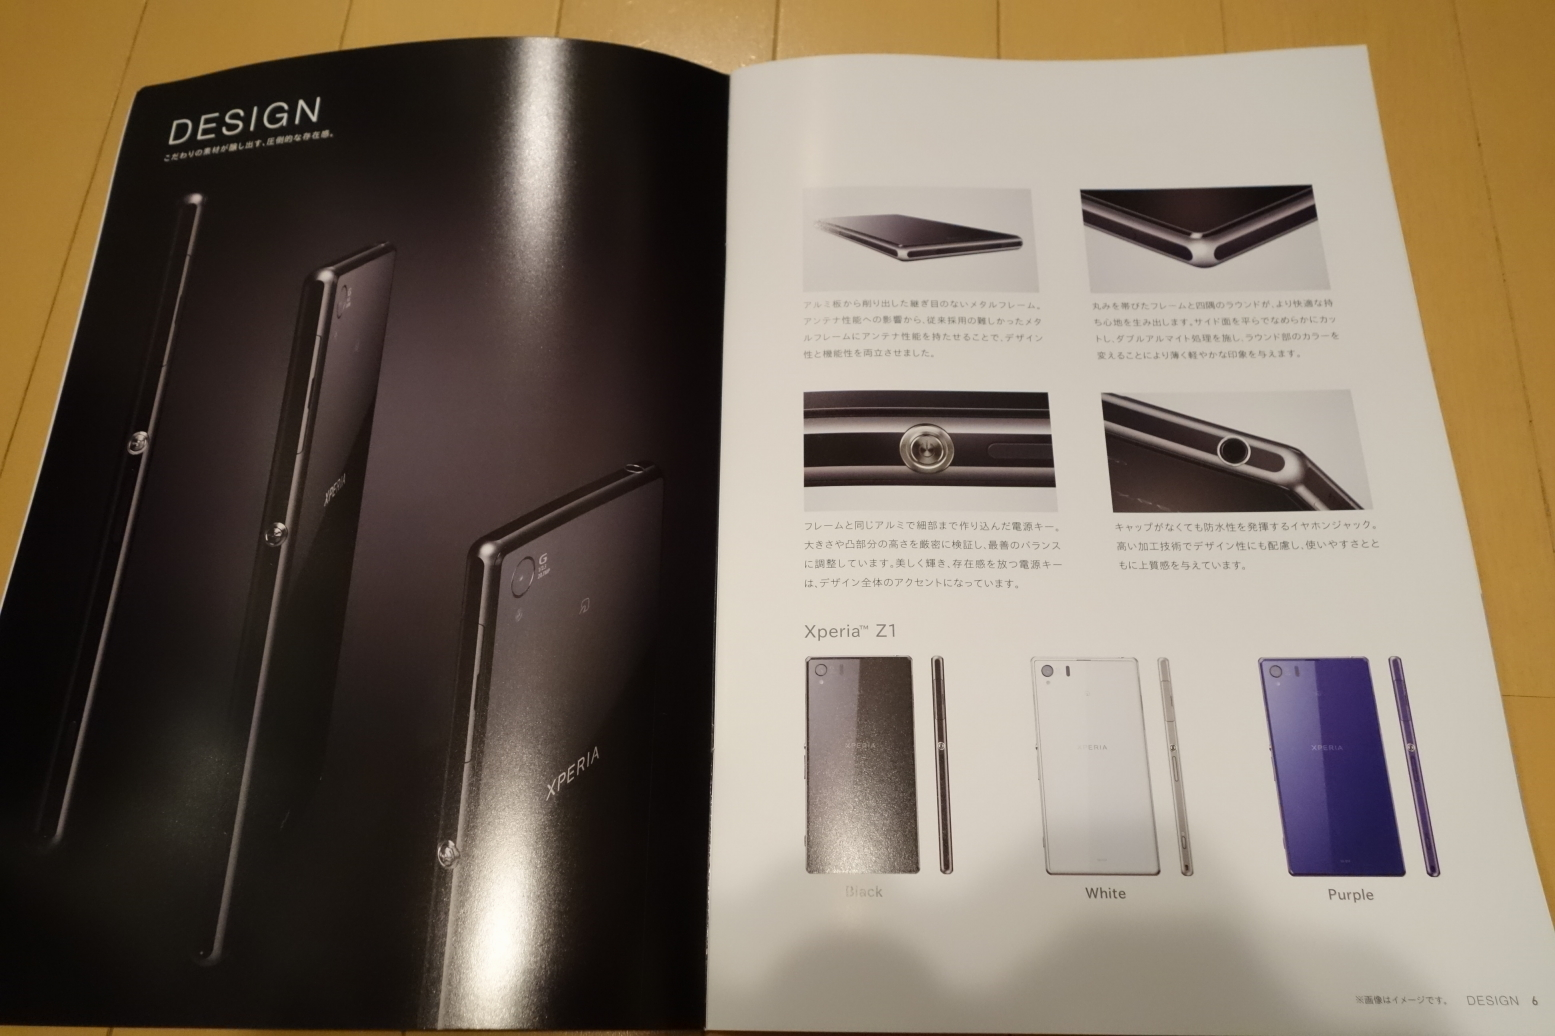 Xperia Z1 (SO-01F) Brochure leak